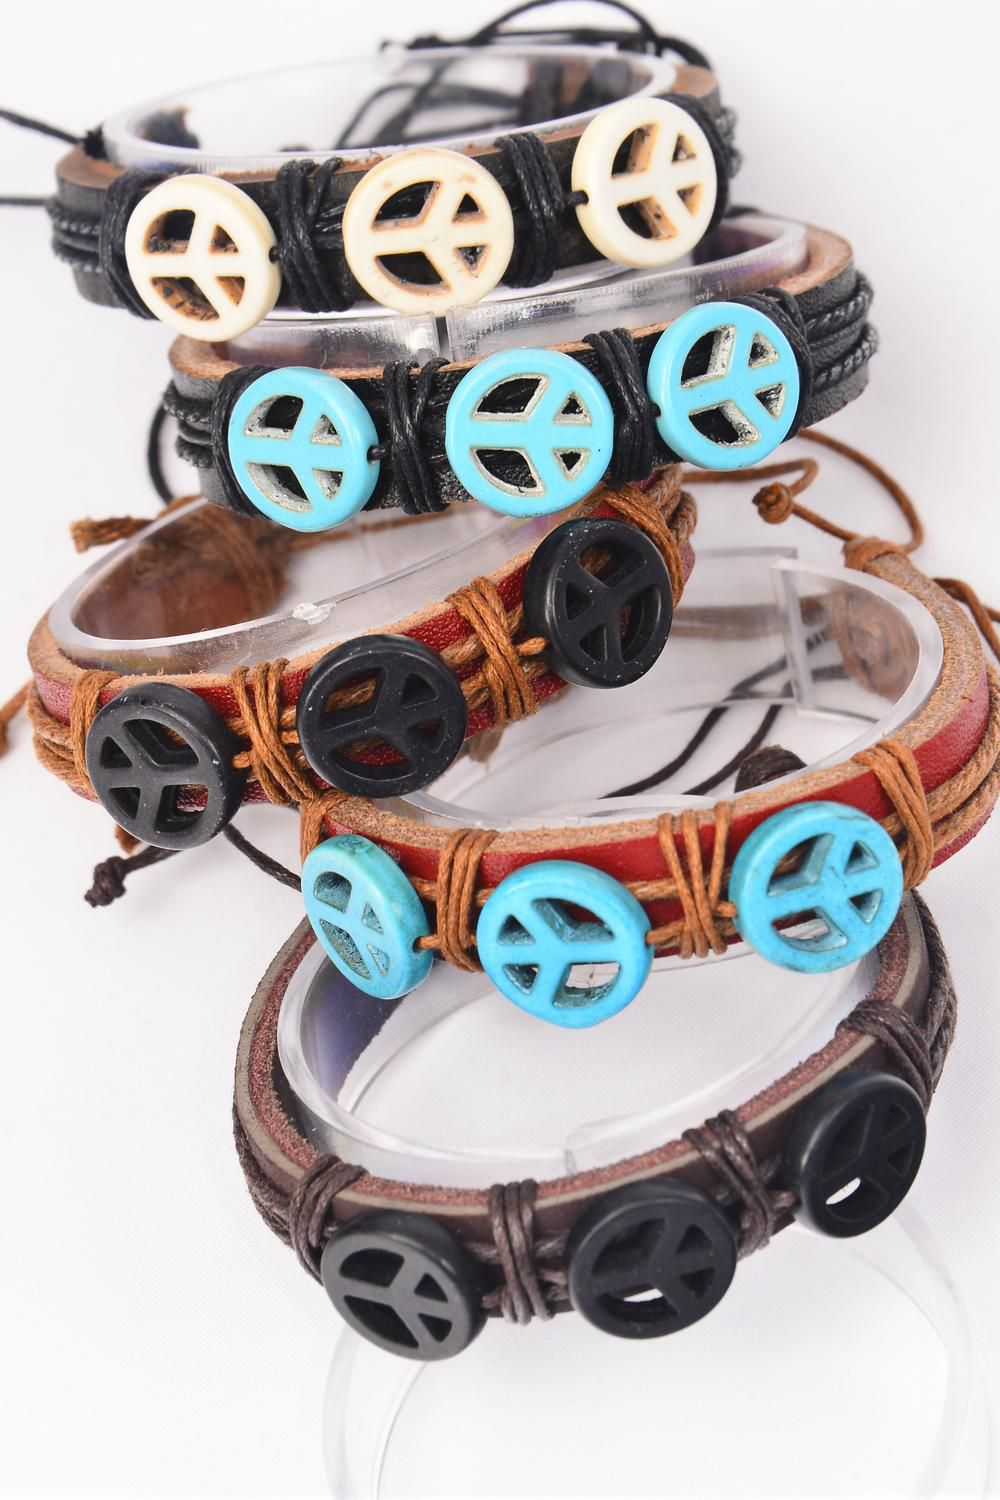 Bracelets Real Leather Band Semiprecious Stone Peace Sign Symbol/DZ **Unisex** Adjustable,3 of each Color Asst,Hang tag & OPP Bag & UPC Code -